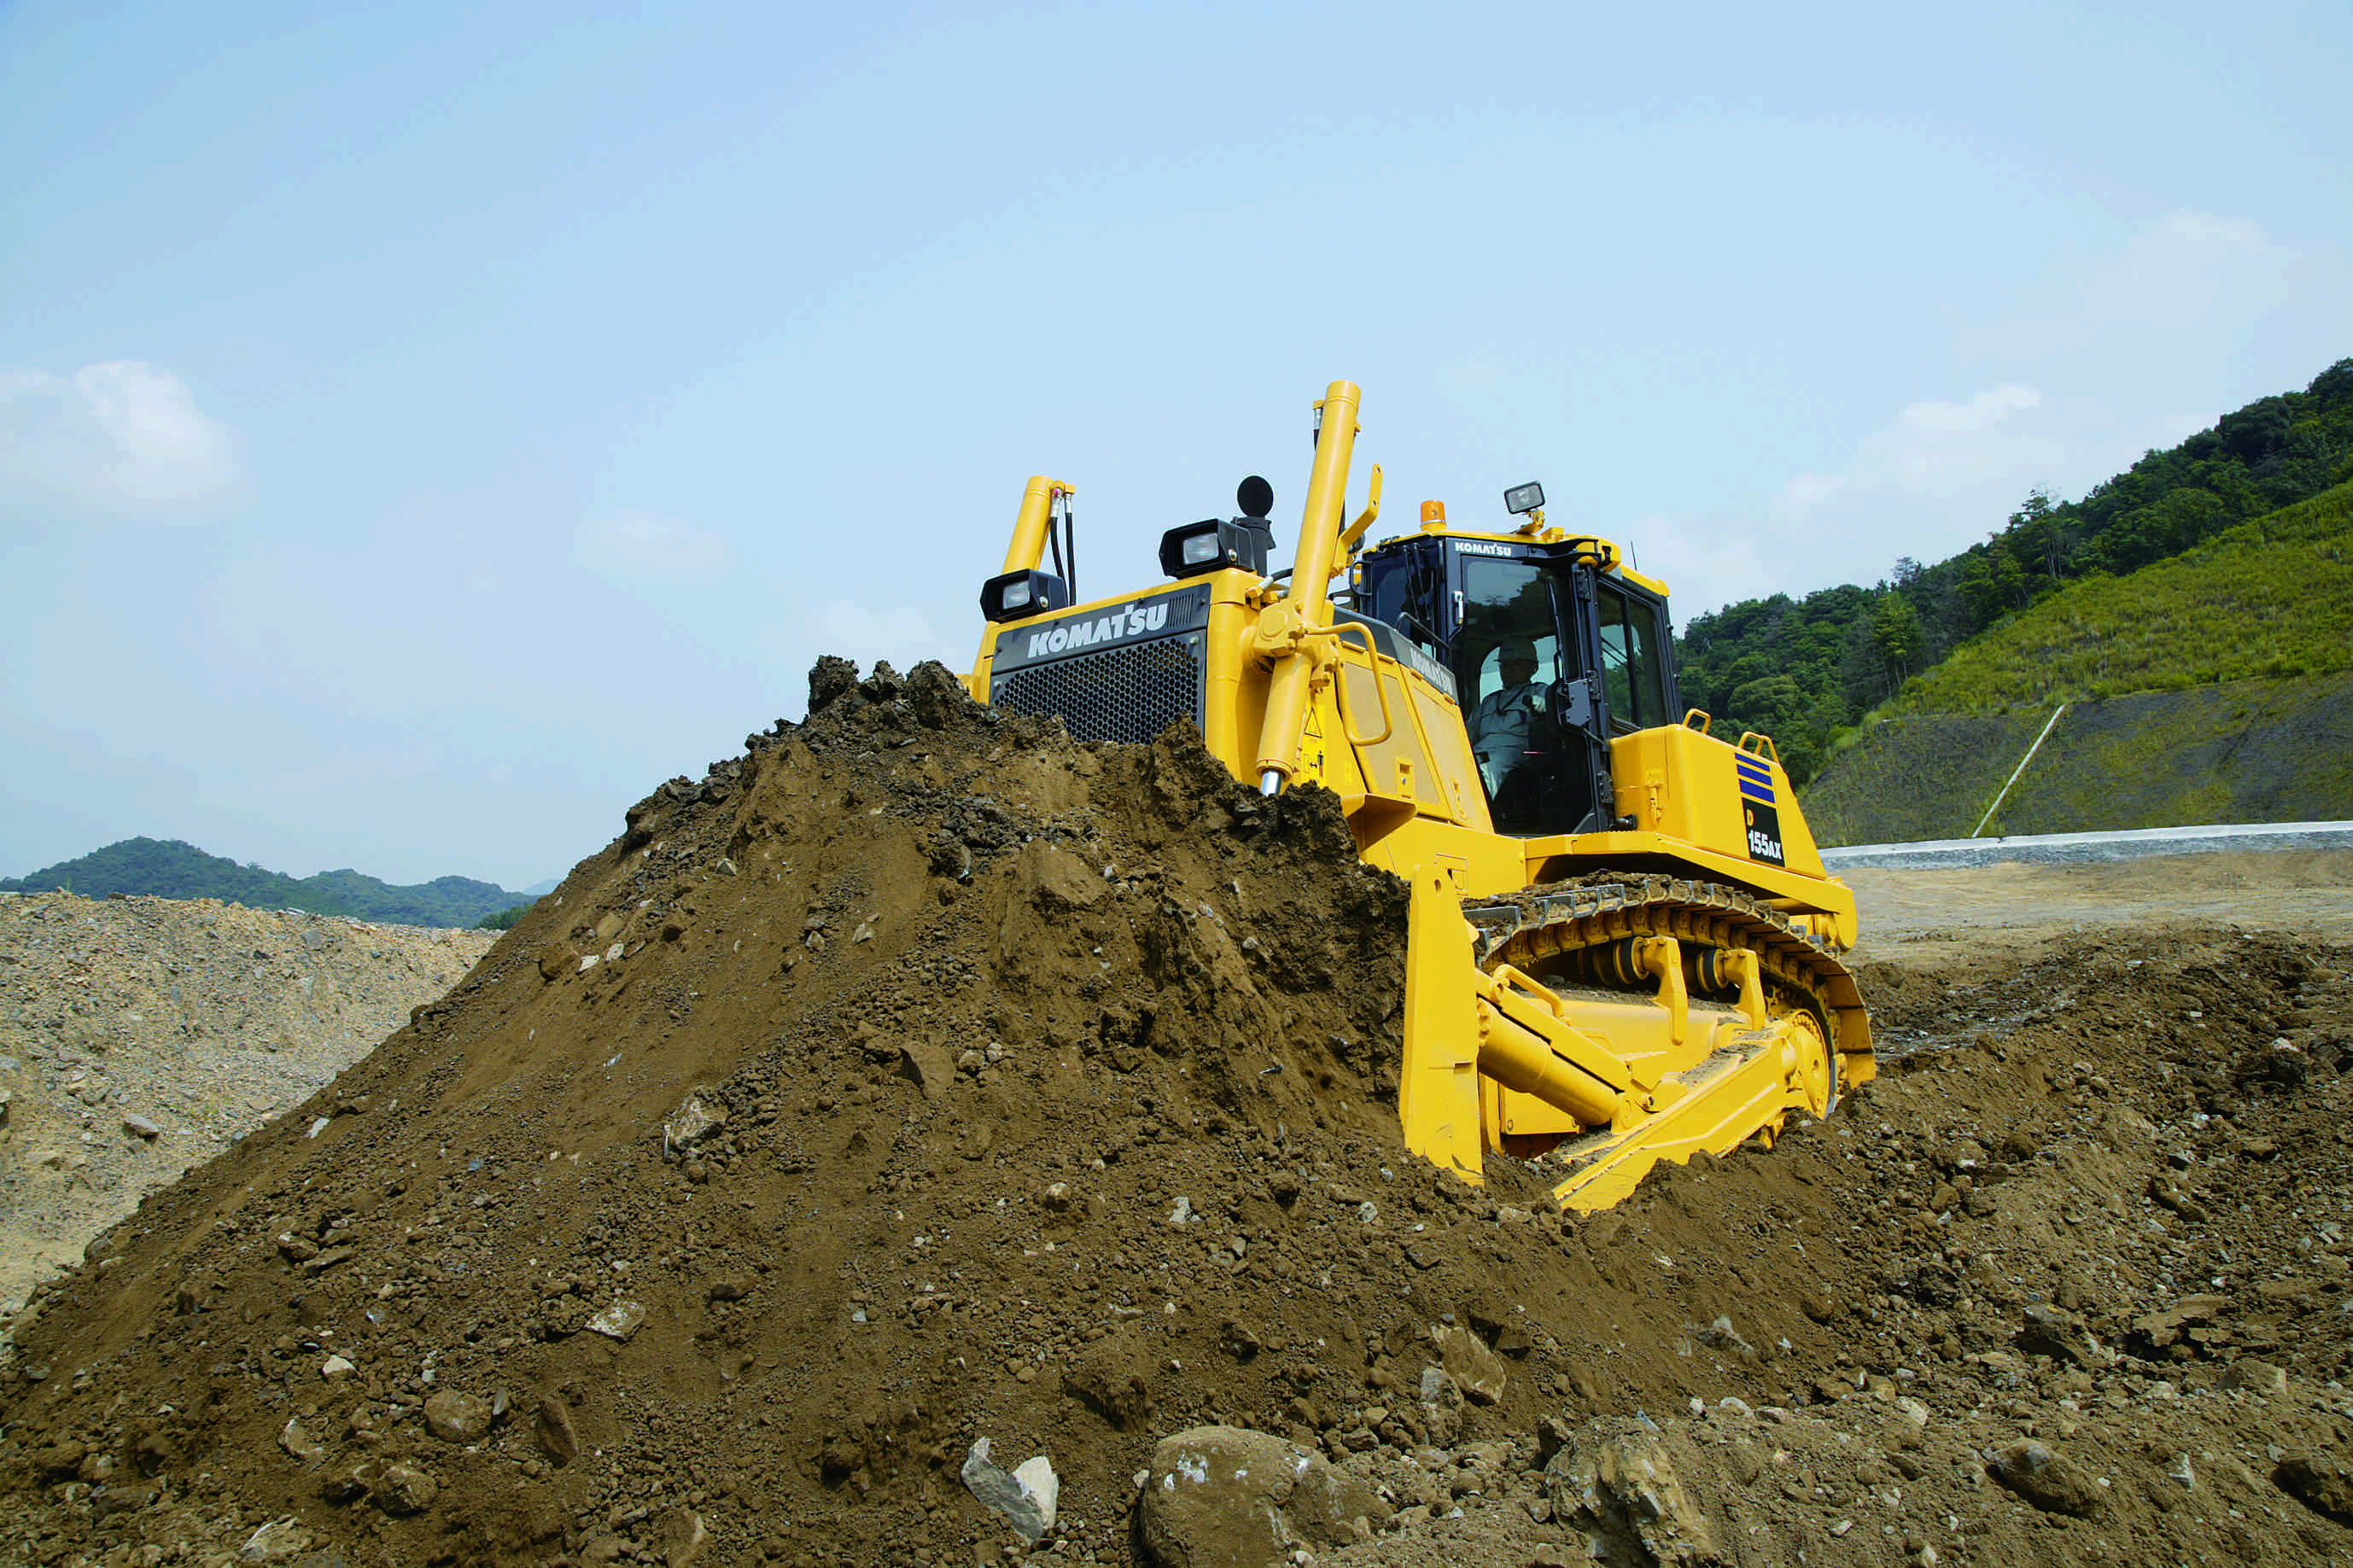 Market for crawler dozers over 210 horsepower recovers